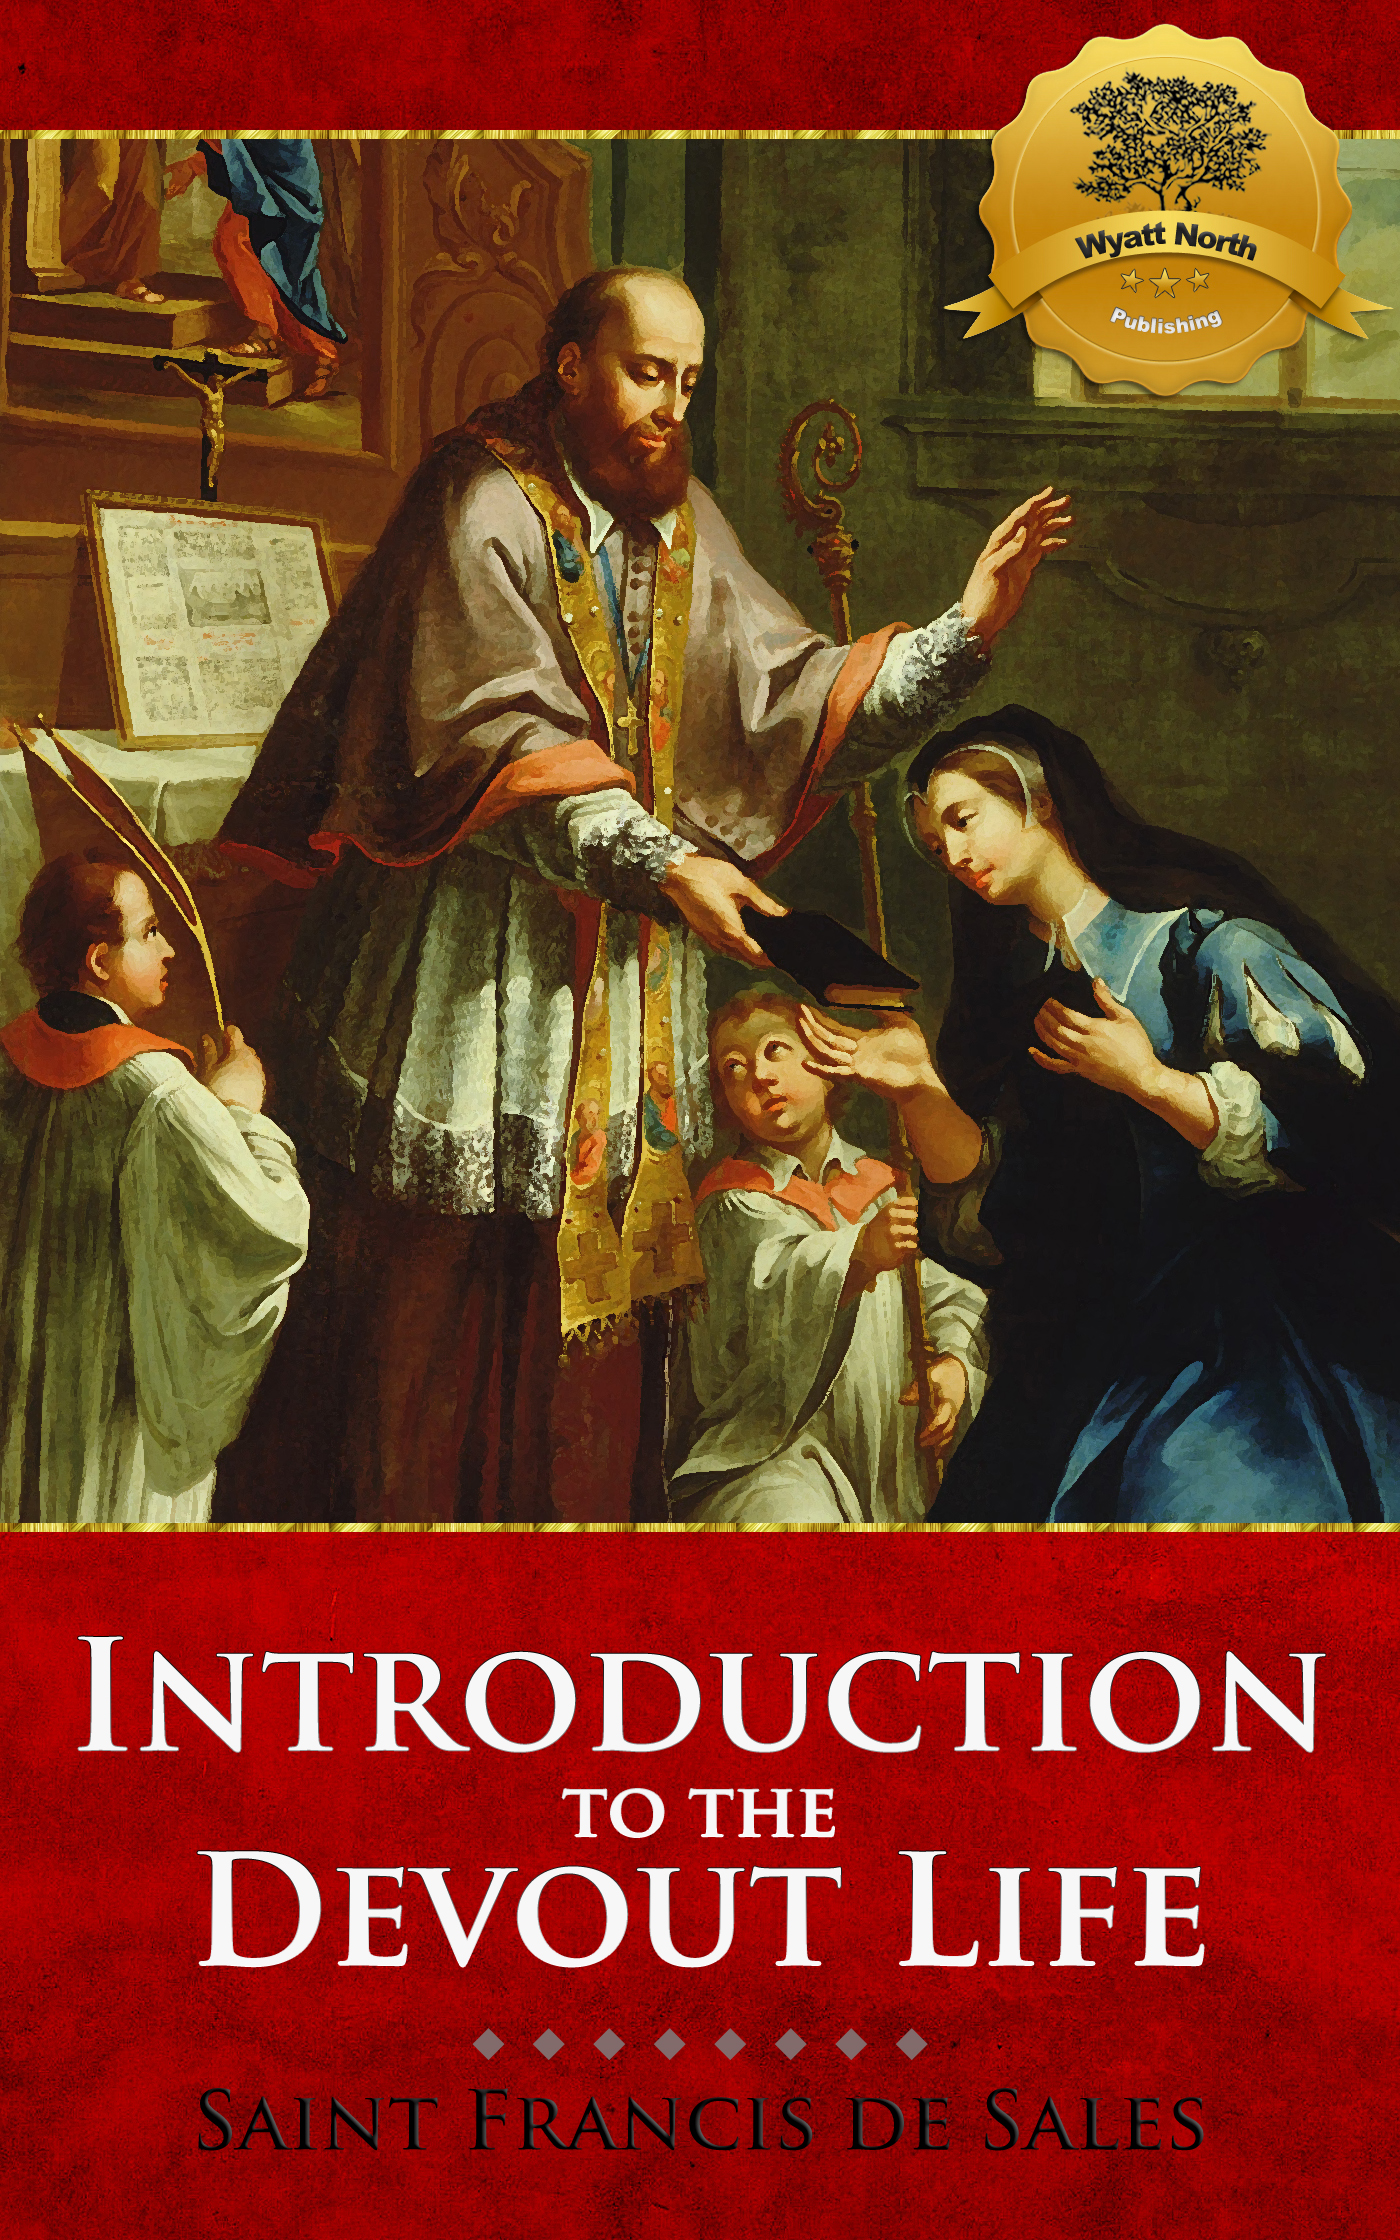 Introduction to the Devout Life By: St. Francis de Sales, Wyatt North